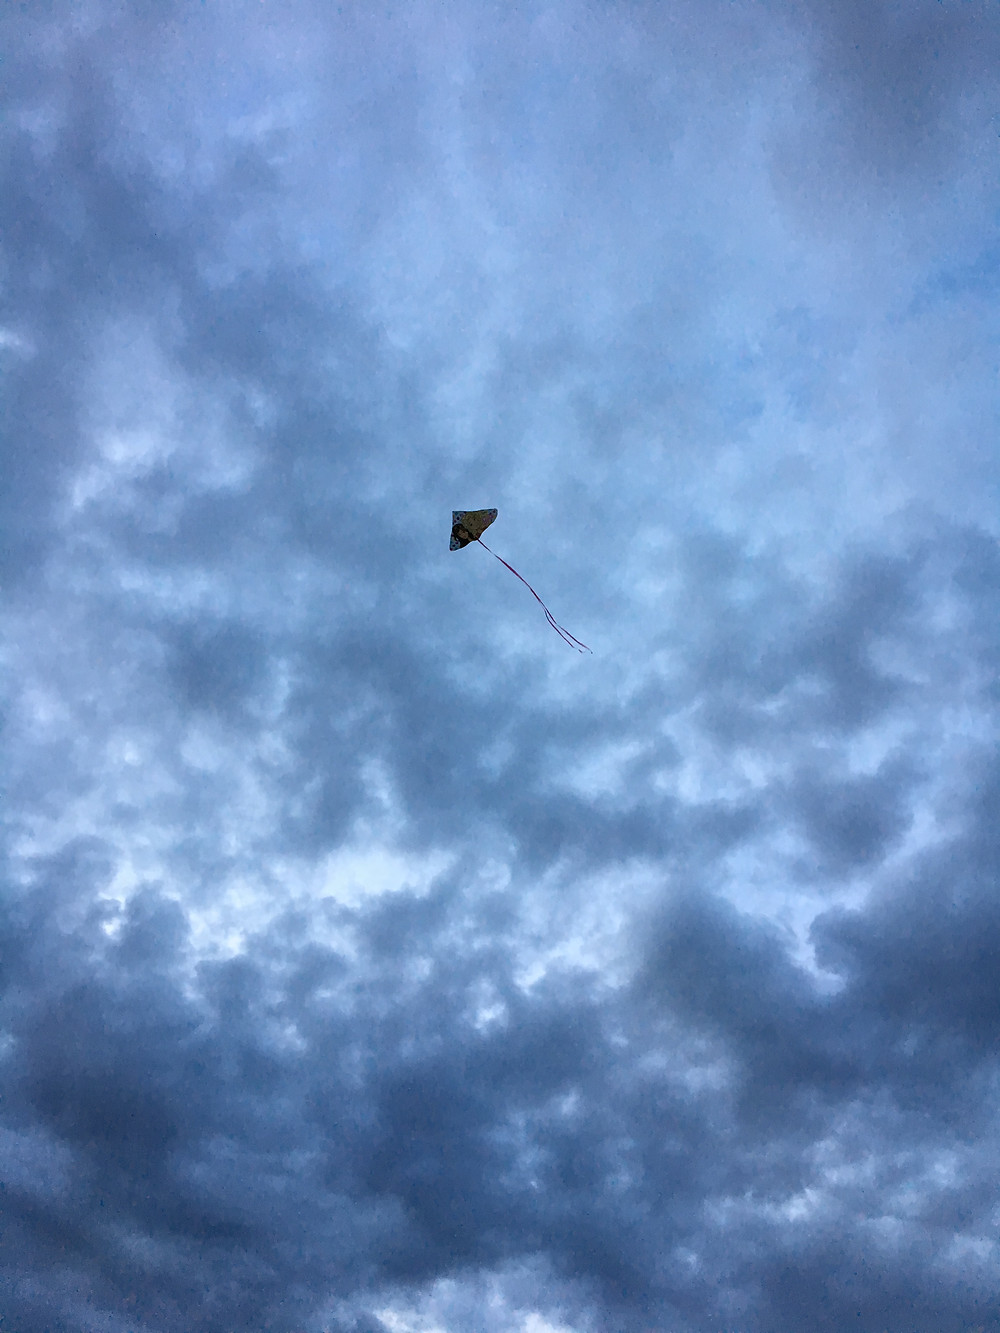 Sometimes You Gotta Be The Lone Kite Flying High